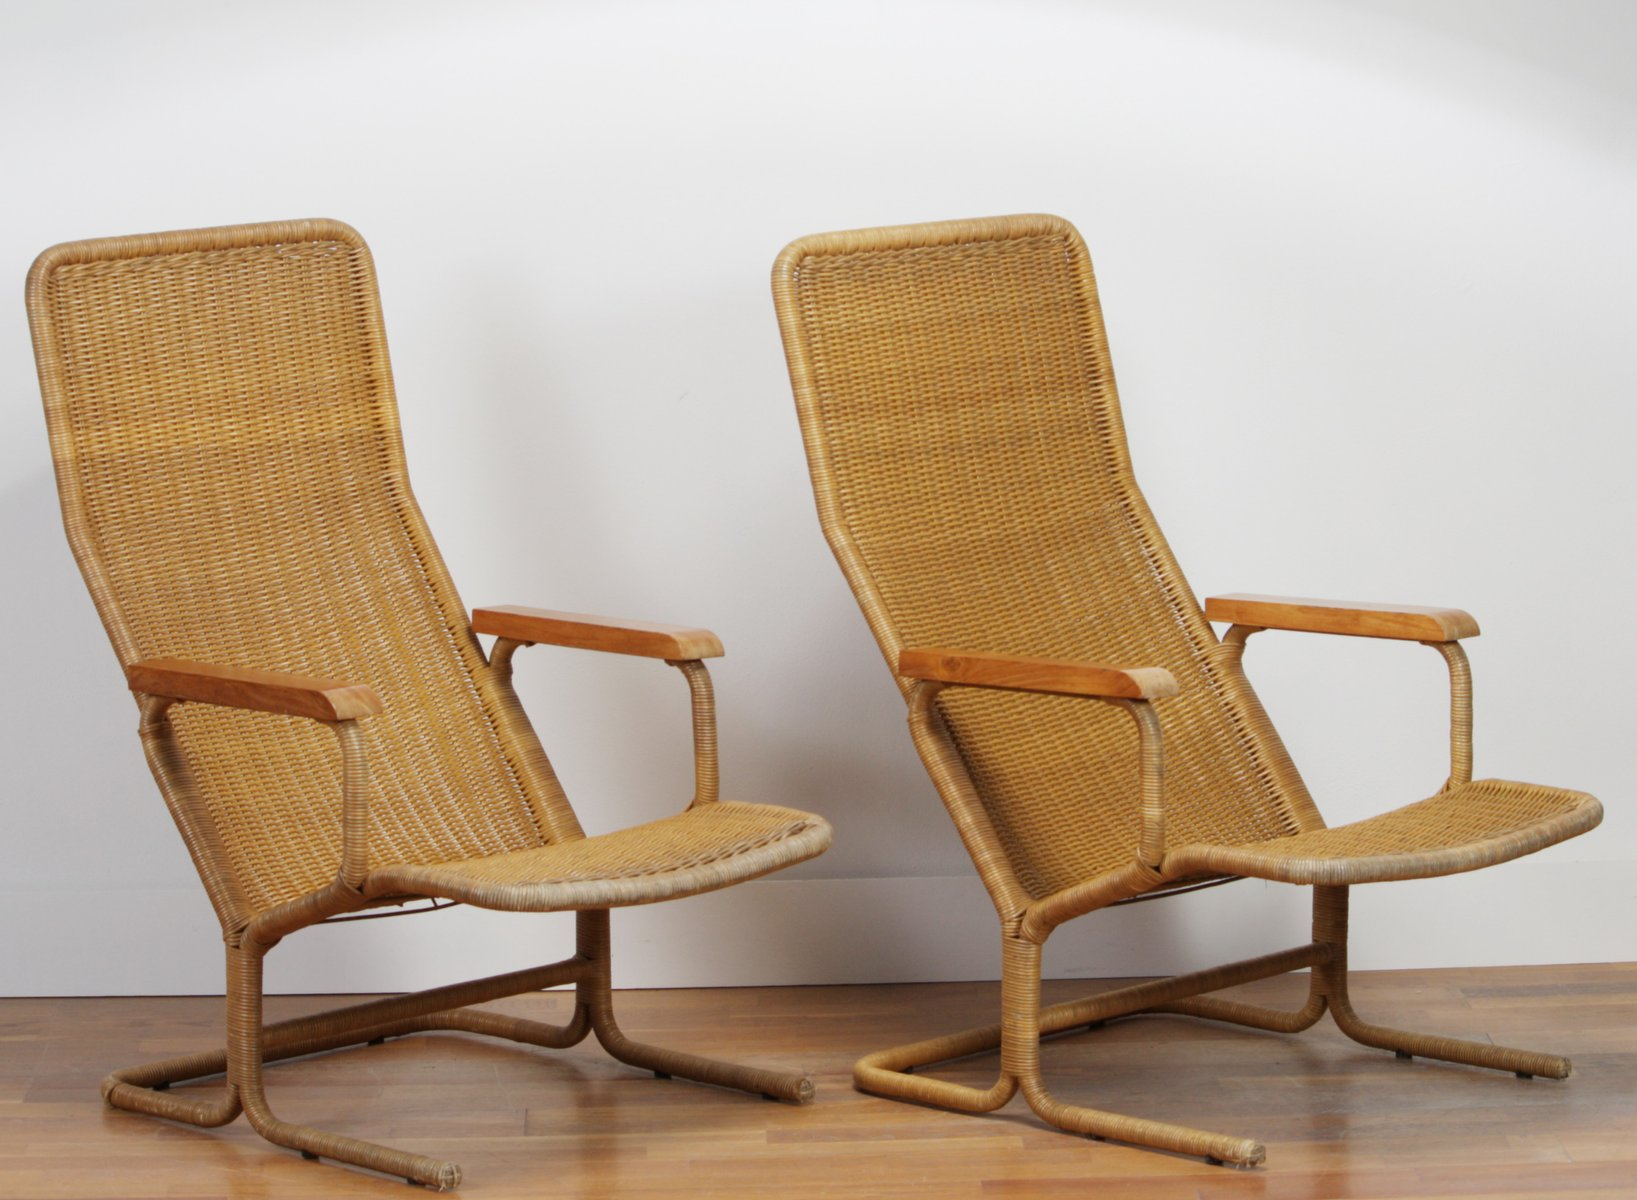 Rattan Lounge Chair by Dirk van Sliedregt for Gebr